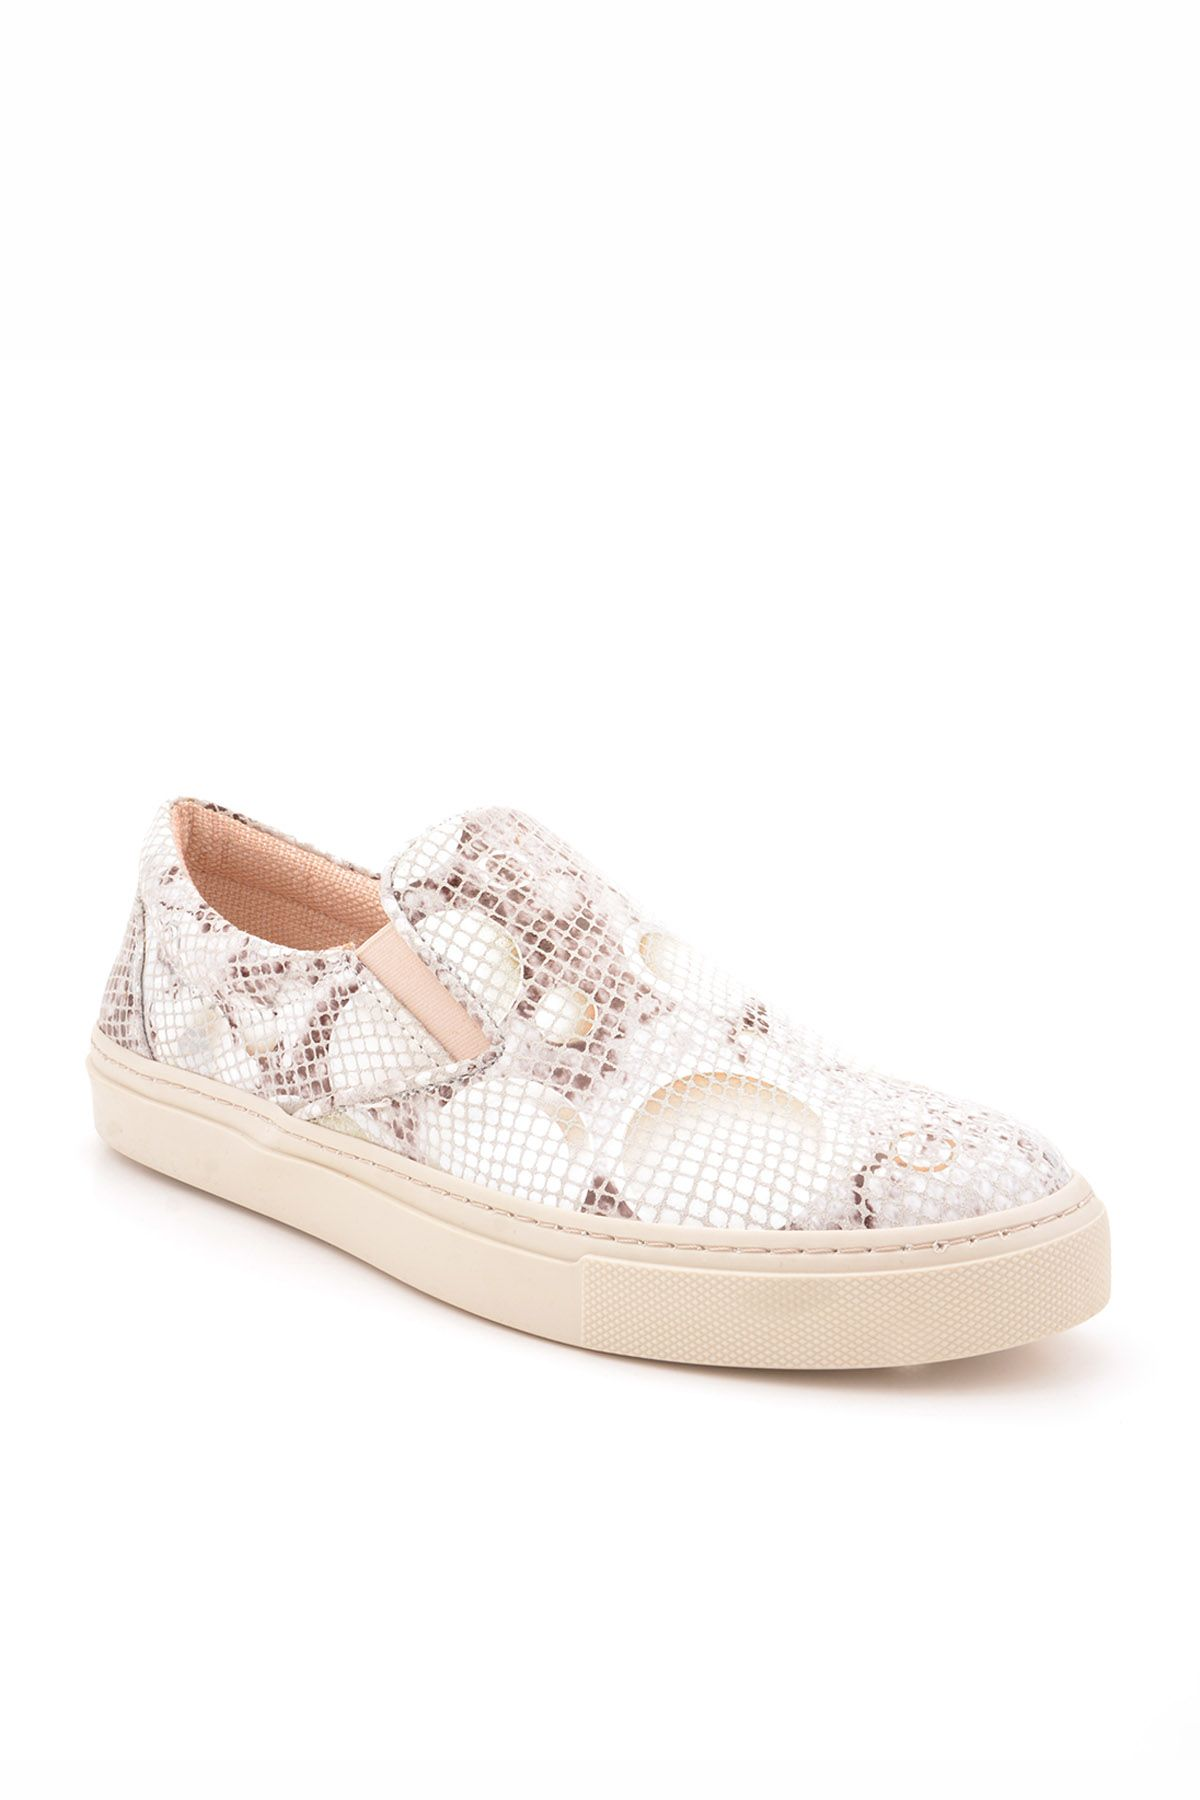 Art Goya Women Sneakers From Genuine Leather With Snake Pattern White